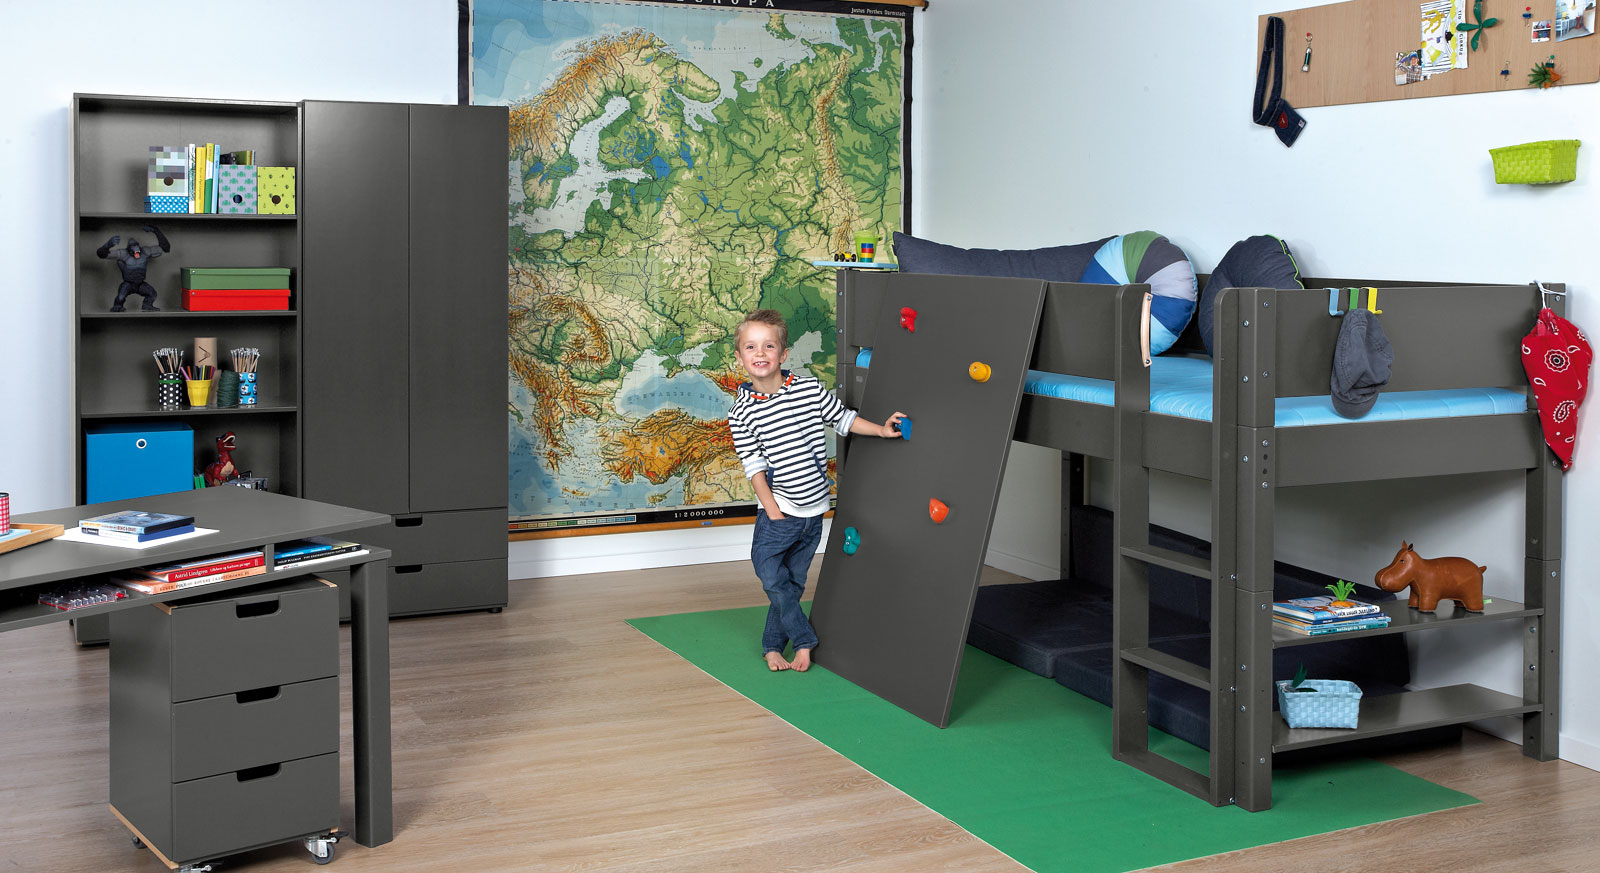 abenteuer kinderzimmer mit hochbett kletterwand kids town. Black Bedroom Furniture Sets. Home Design Ideas